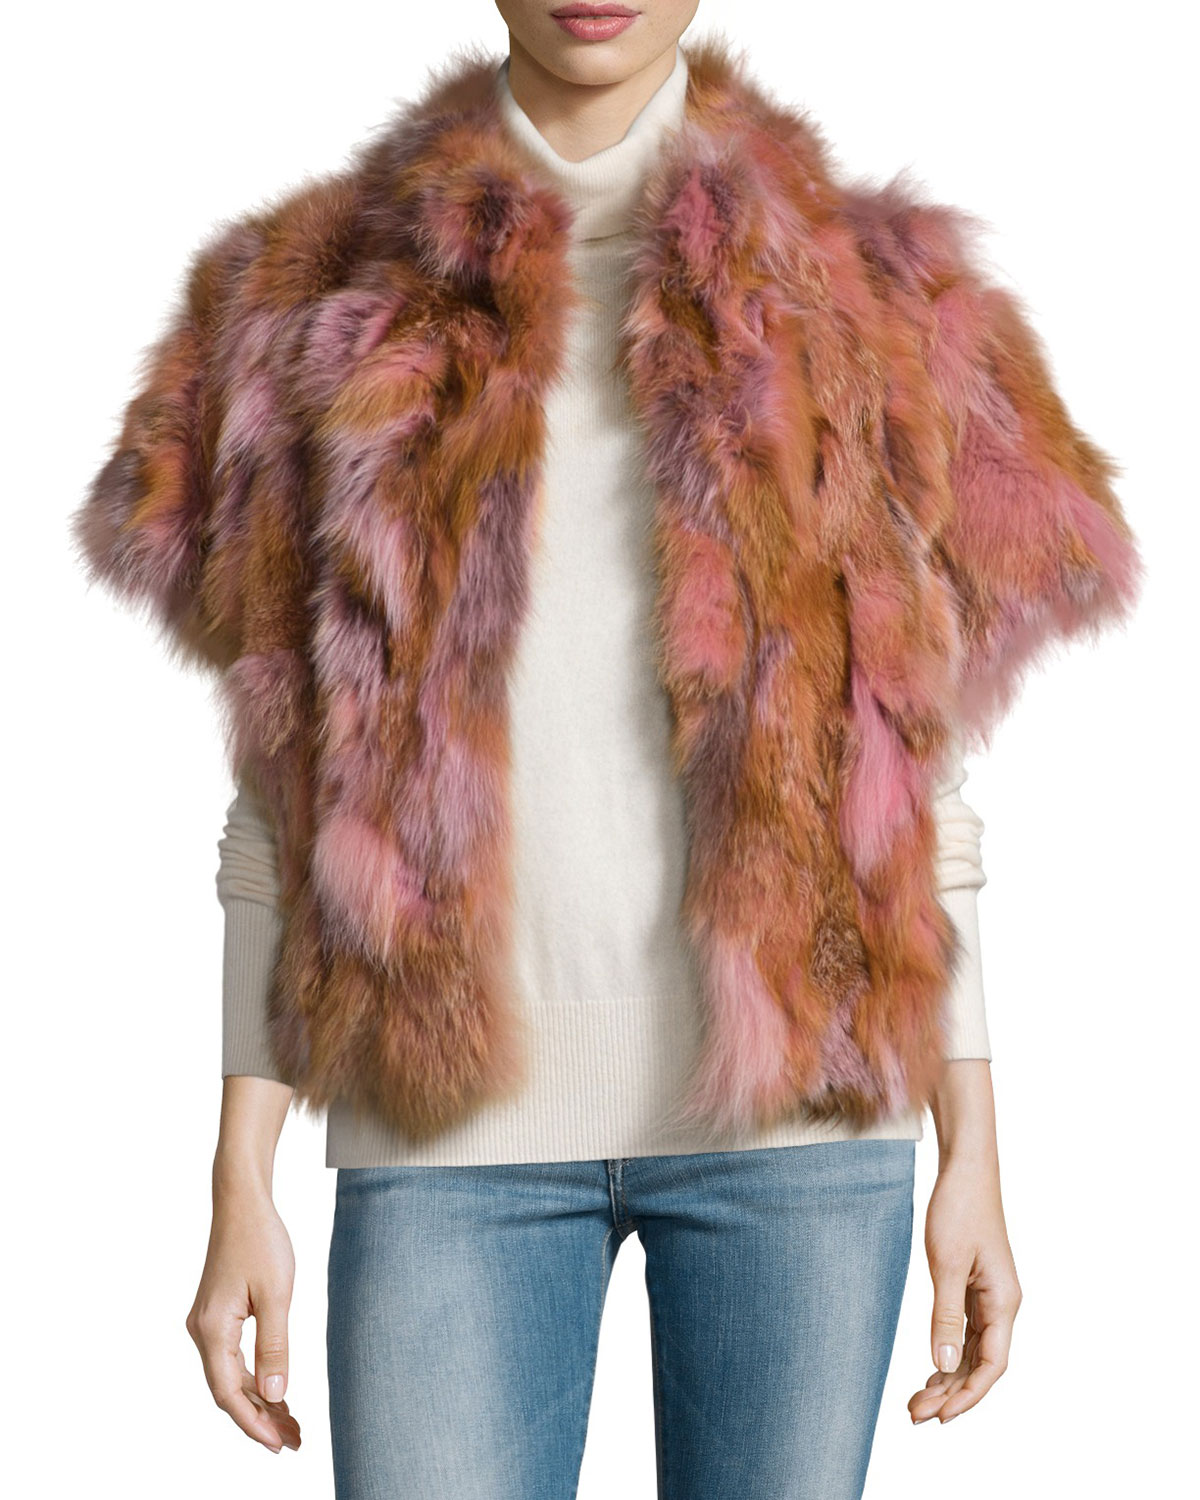 Fox Fur Batwing Vest, Blush, Size: SMALL - Pologeorgis